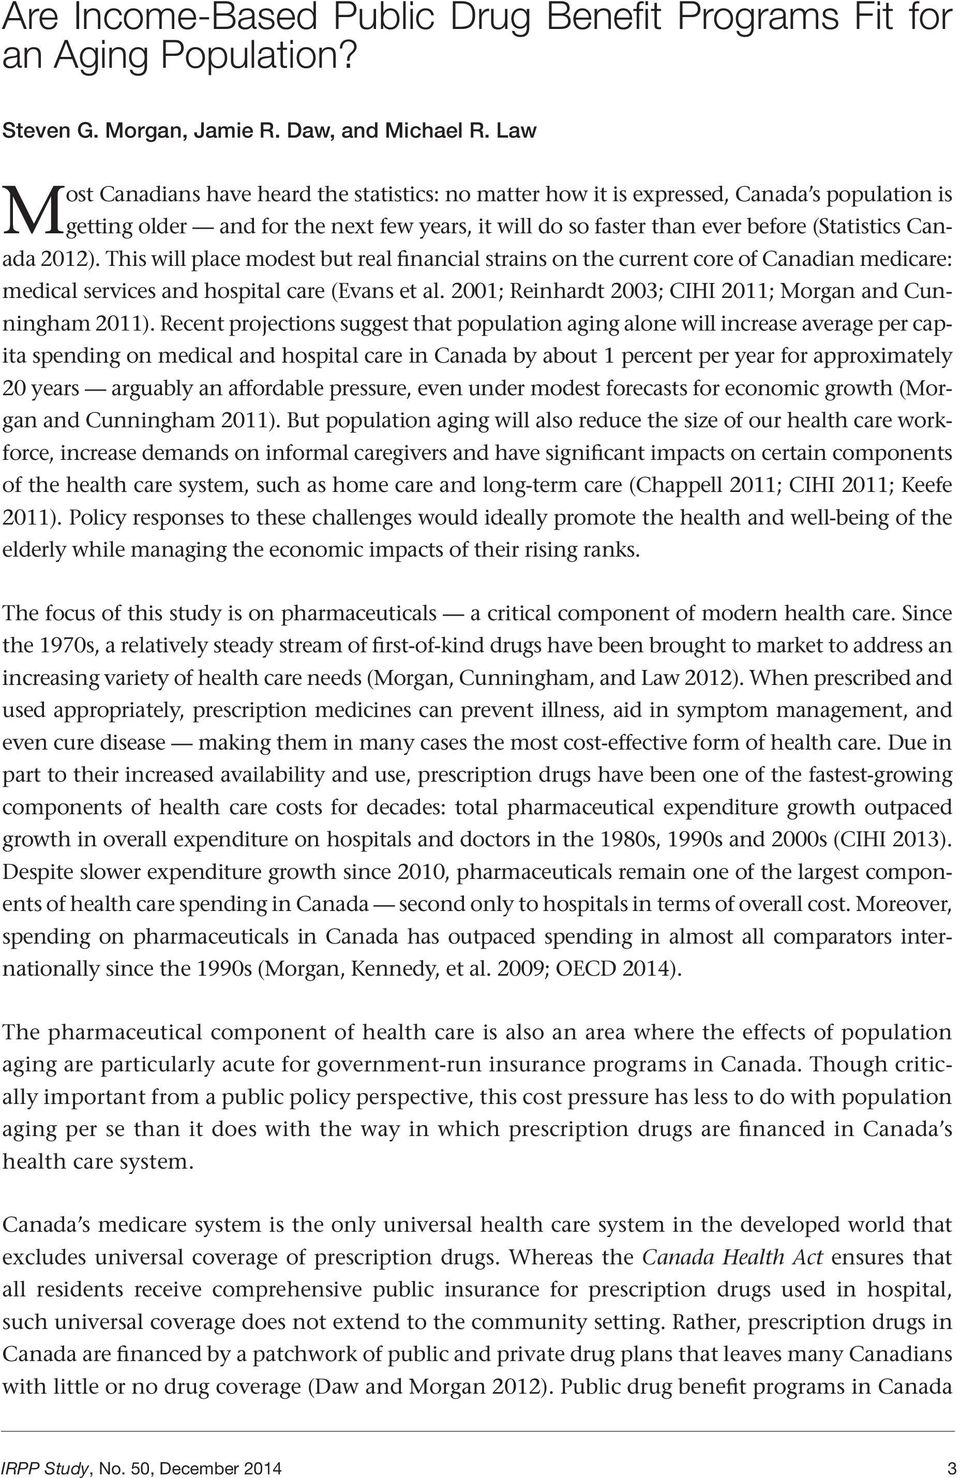 2012). This will place modest but real financial strains on the current core of Canadian medicare: medical services and hospital care (Evans et al.